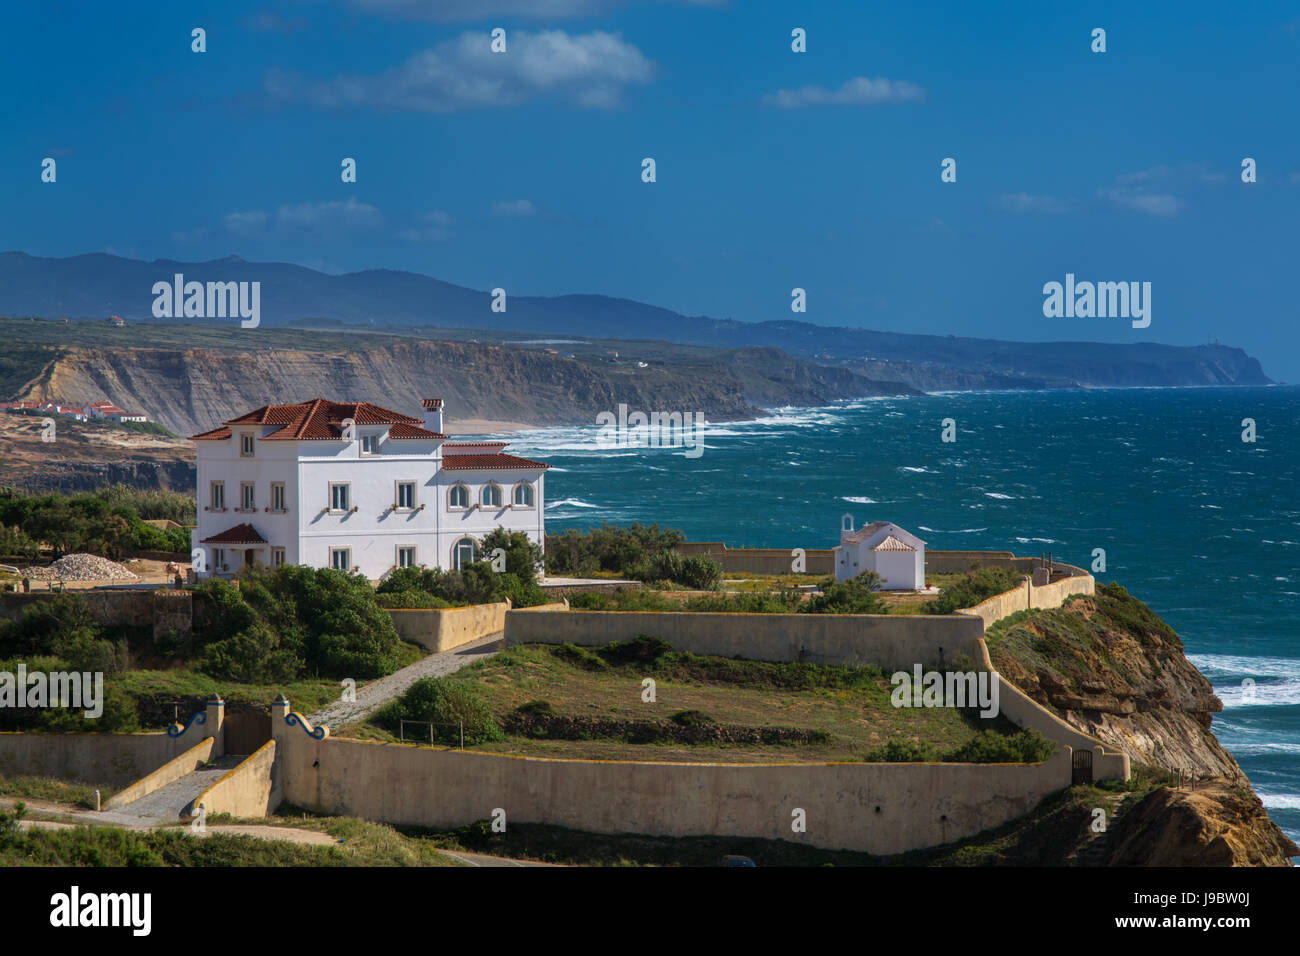 Ericeira Portugal. 18 May 2017.View of Ericeira Hotel in Ericeira Village.Ericeira, Portugal. photography by Ricardo - Stock Image